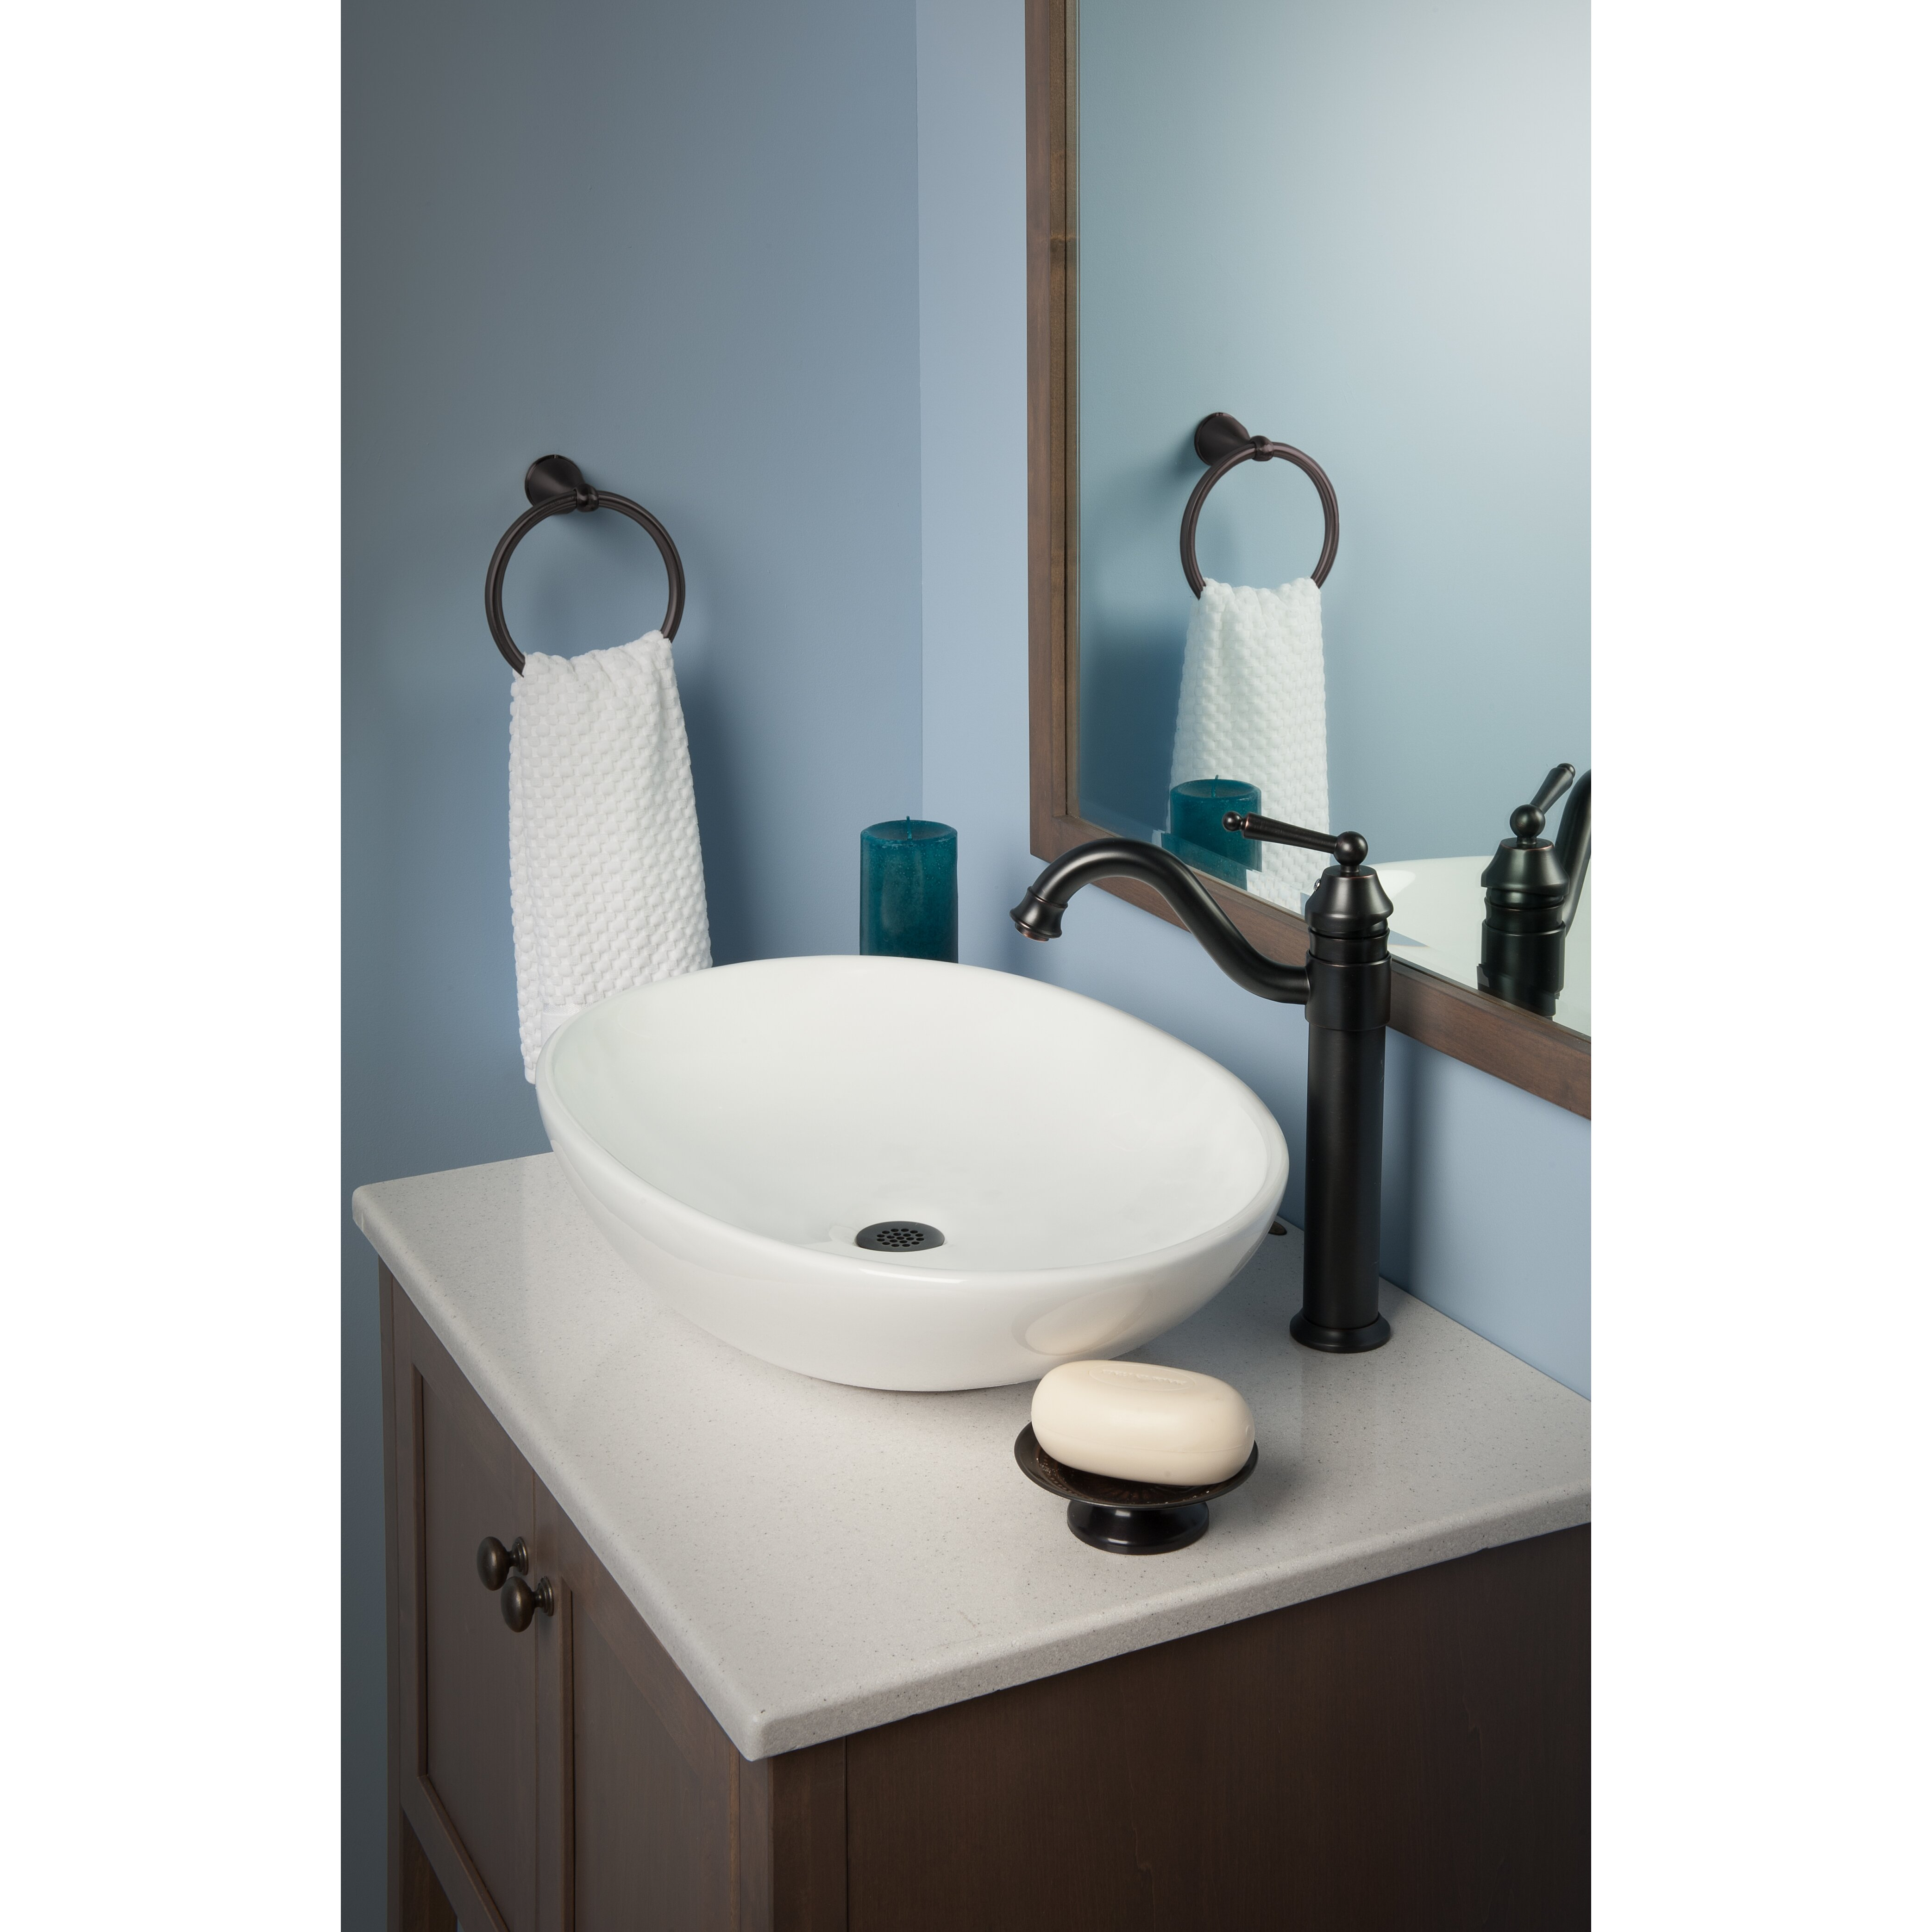 Vessel Sink Overflow : Novatto Oval Ceramic Vessel Bathroom Sink with Overflow Wayfair.ca